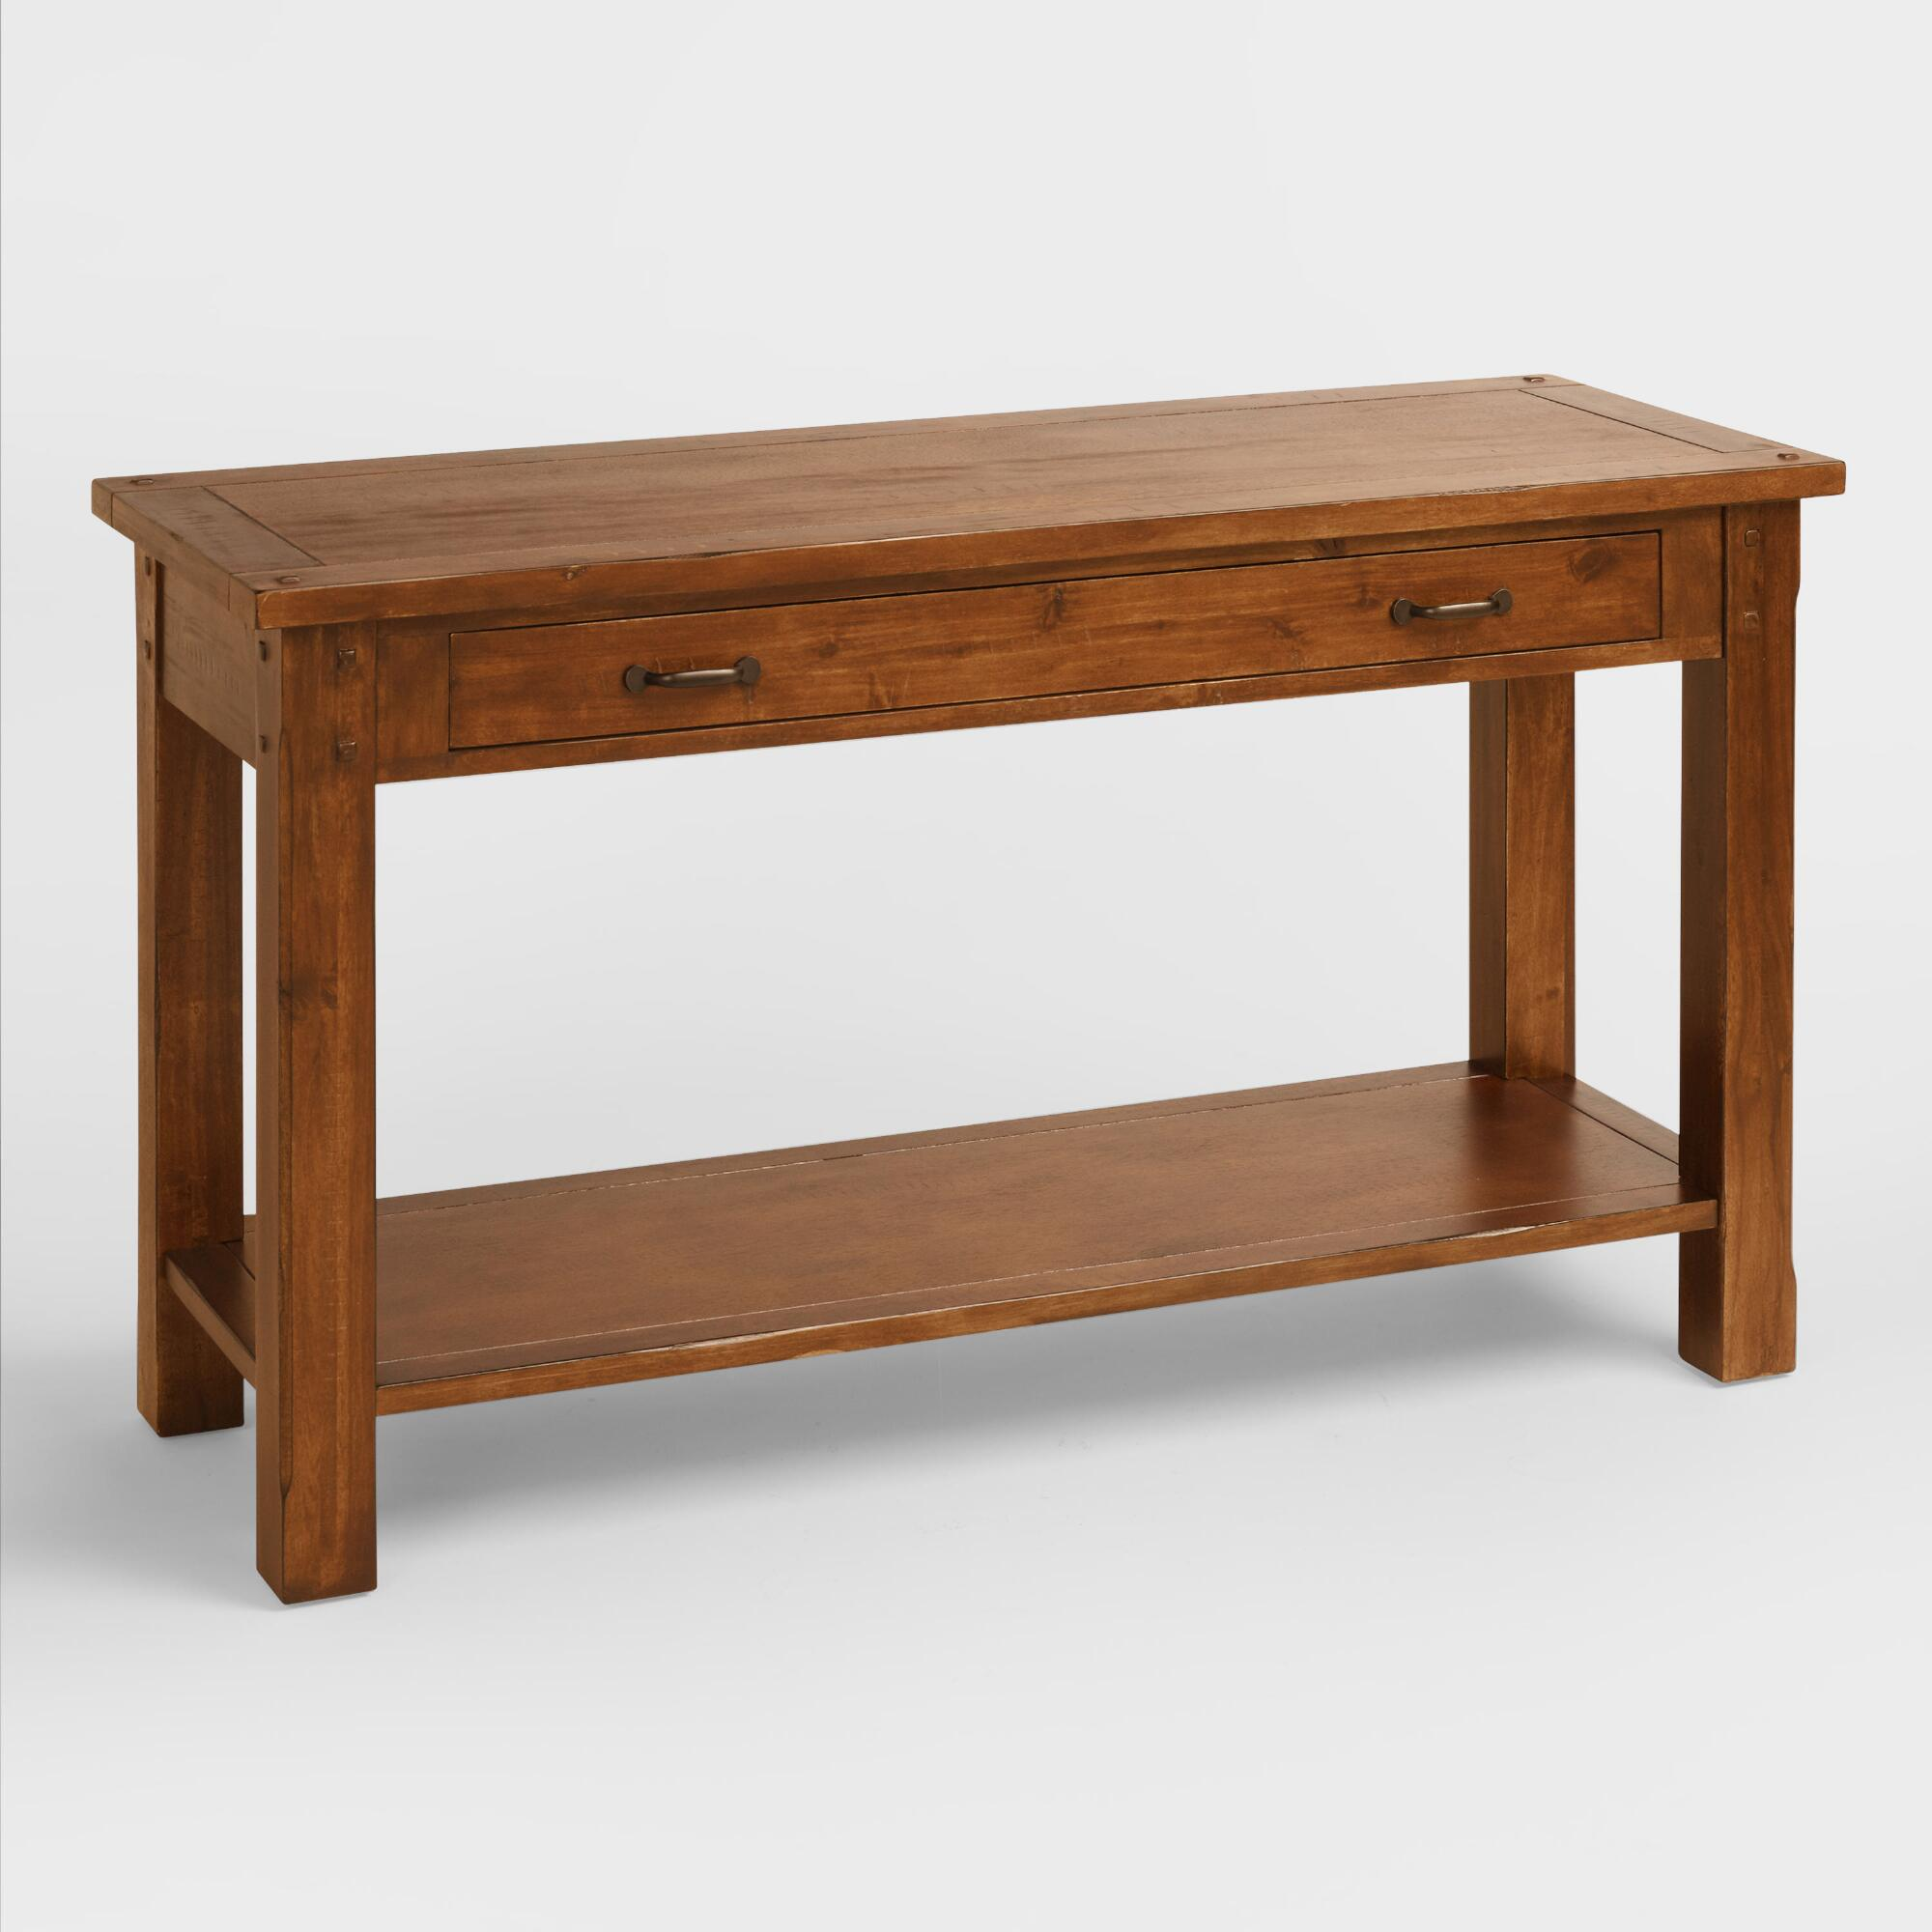 Cost Plus World Market Madera Console Table Brown Wood